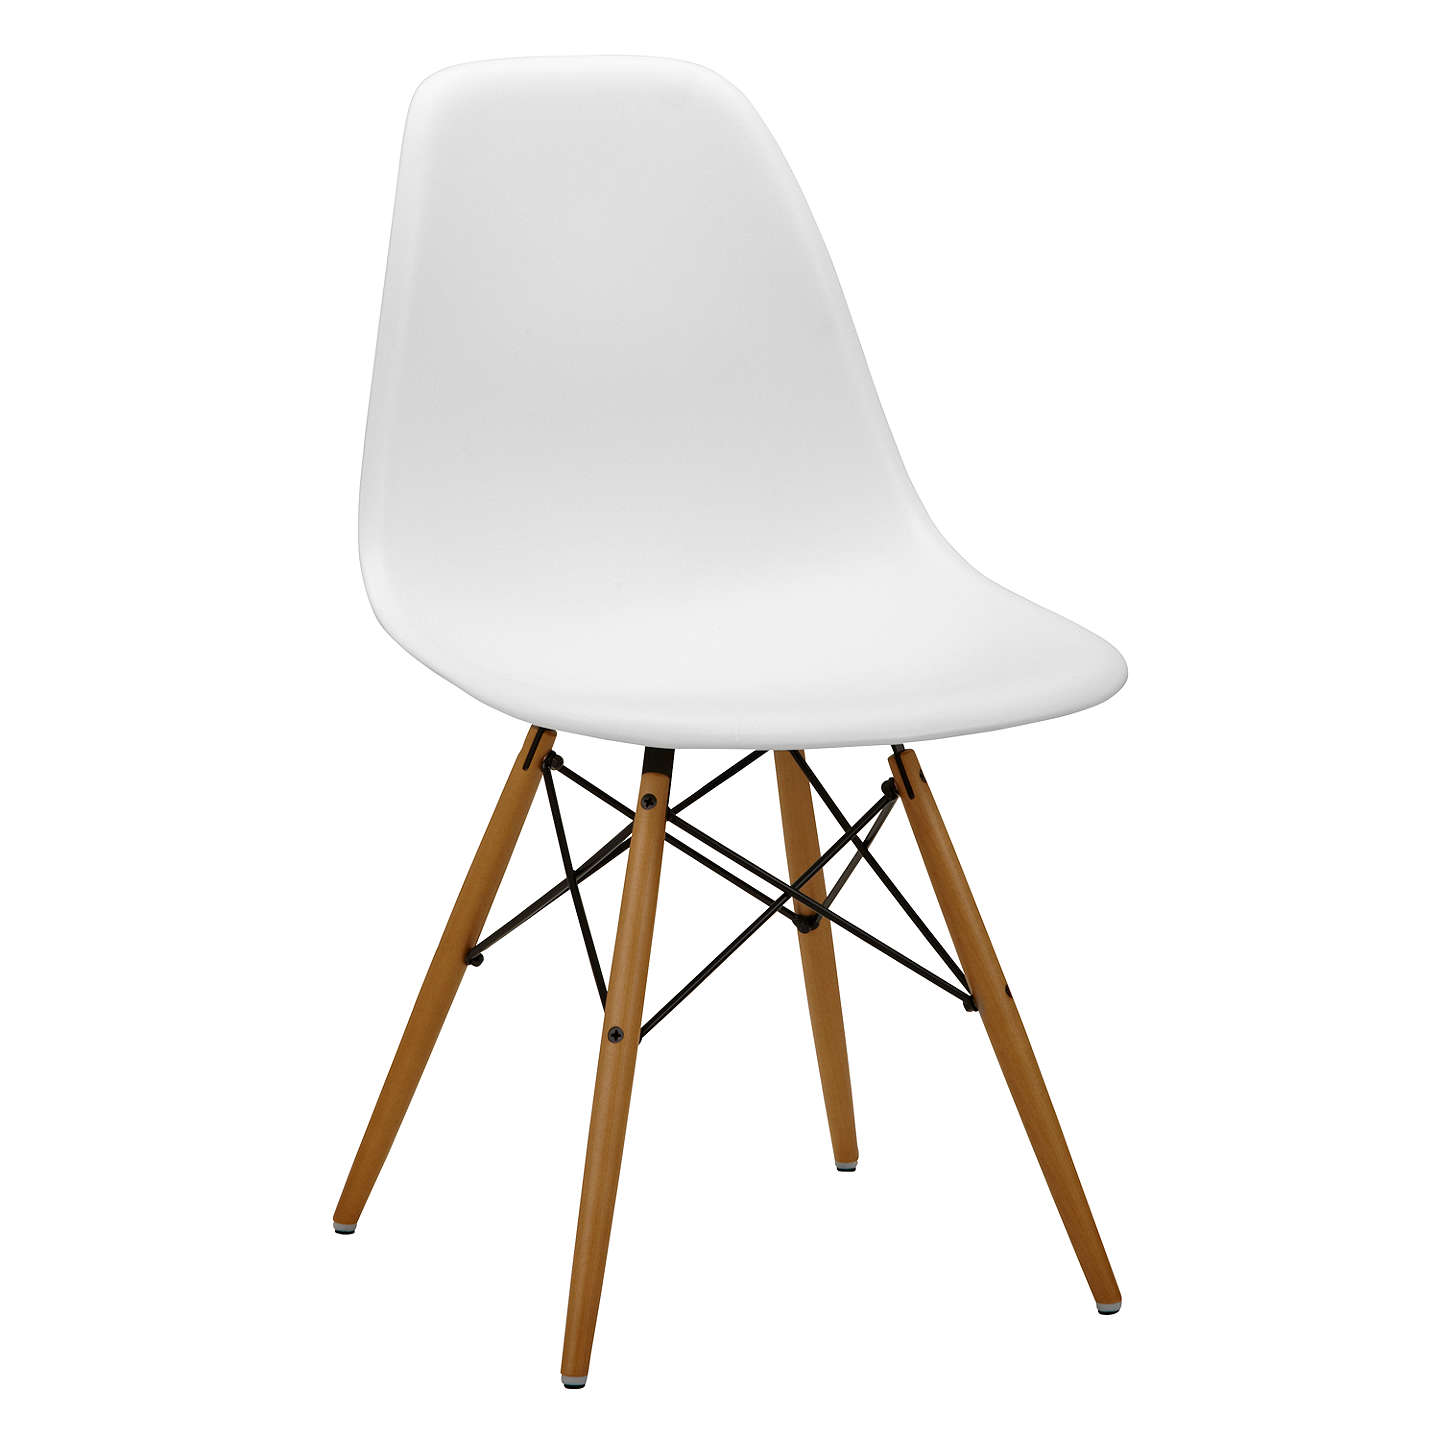 Vitra eames dsw 43cm side chair at john lewis for Vitra eames plastic armchair replica